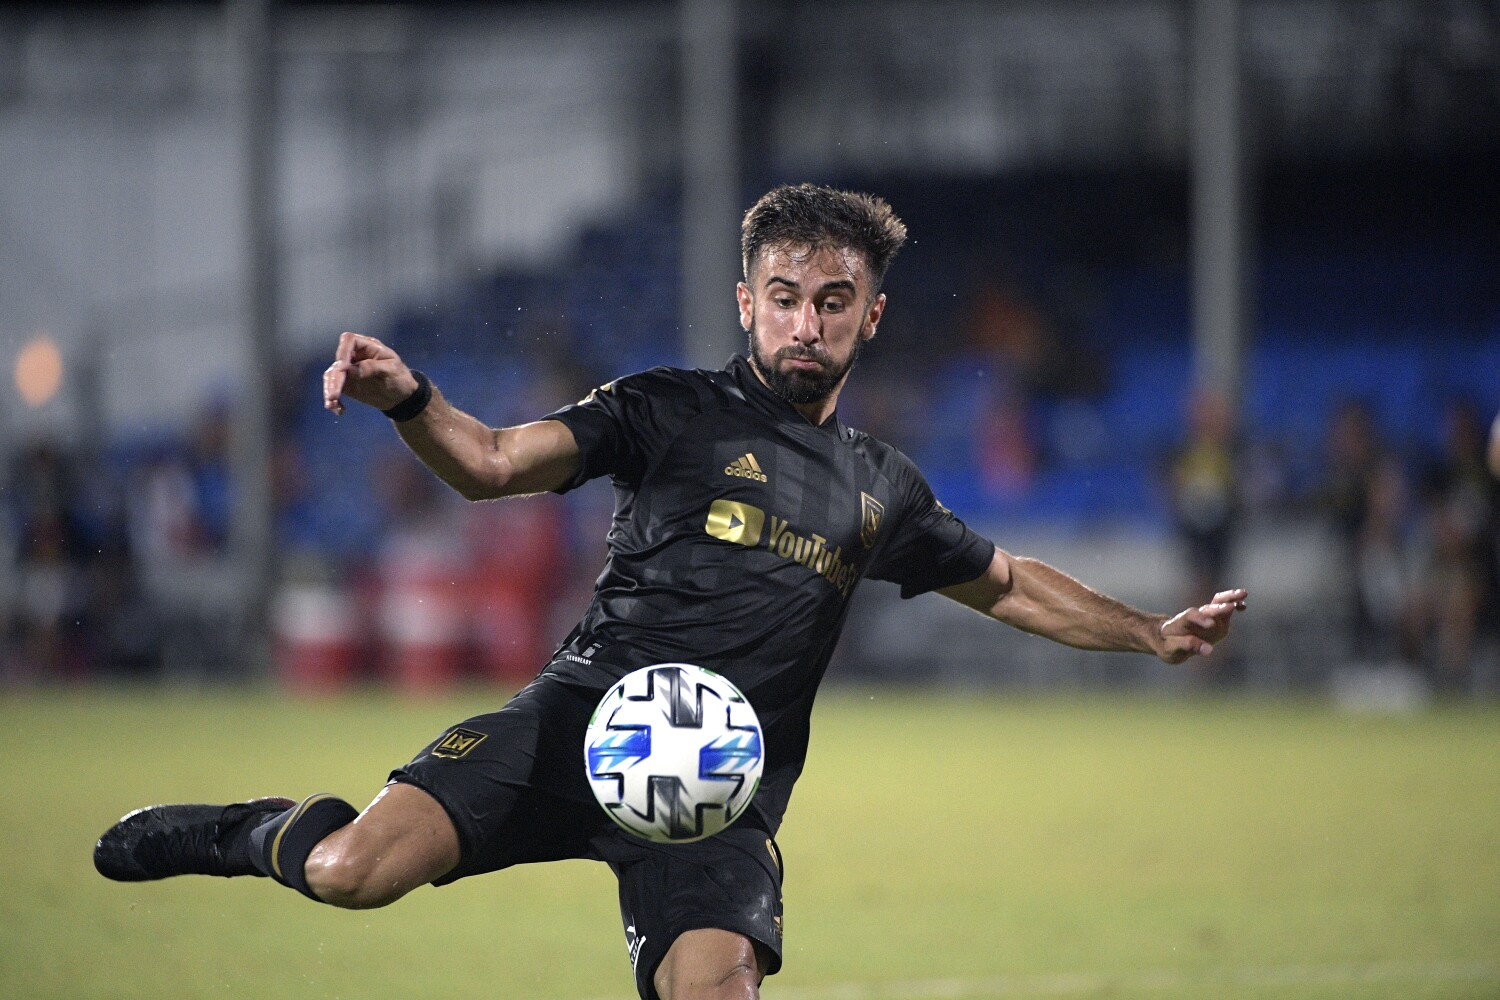 LAFC clinches MLS playoff berth with win over Houston Dynamo